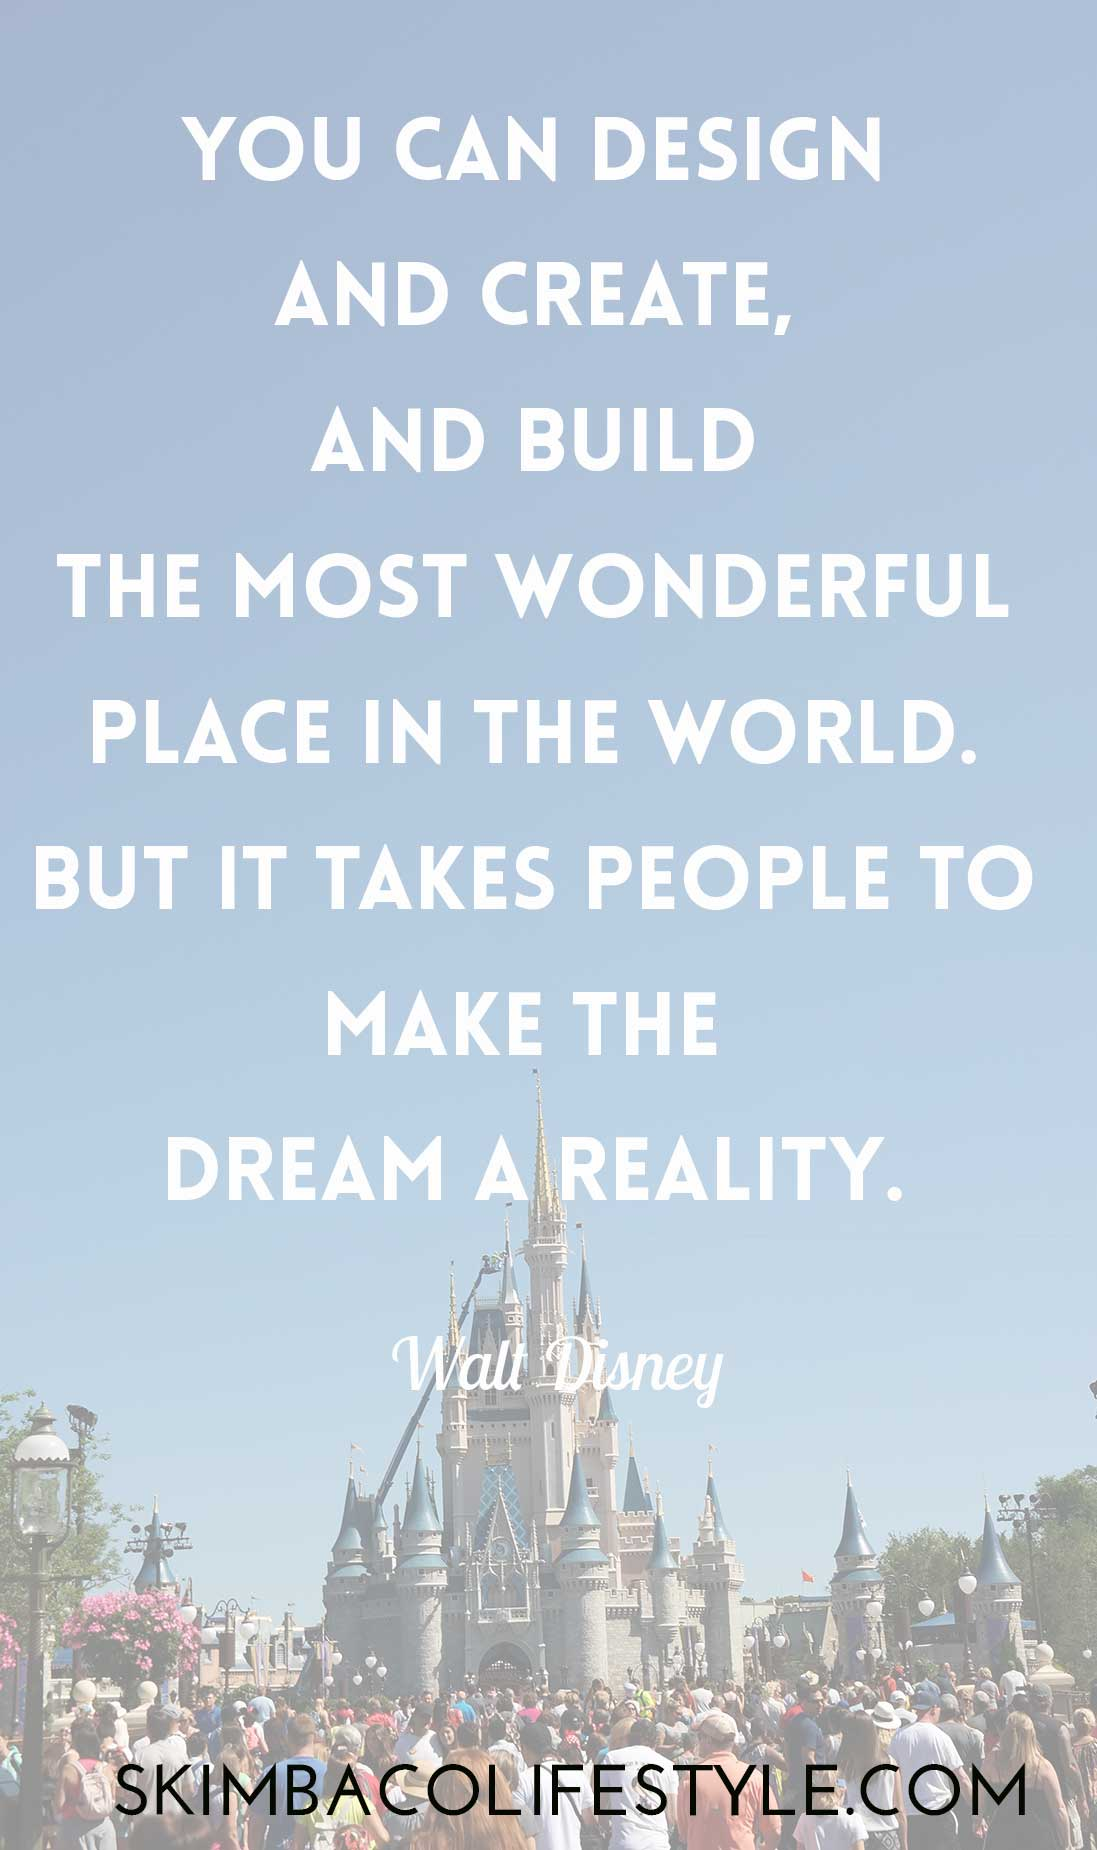 You can design and create, and build the most wonderful place in the world. But it takes people to make the dream a reality. Walt Disney quote via @skimbaco